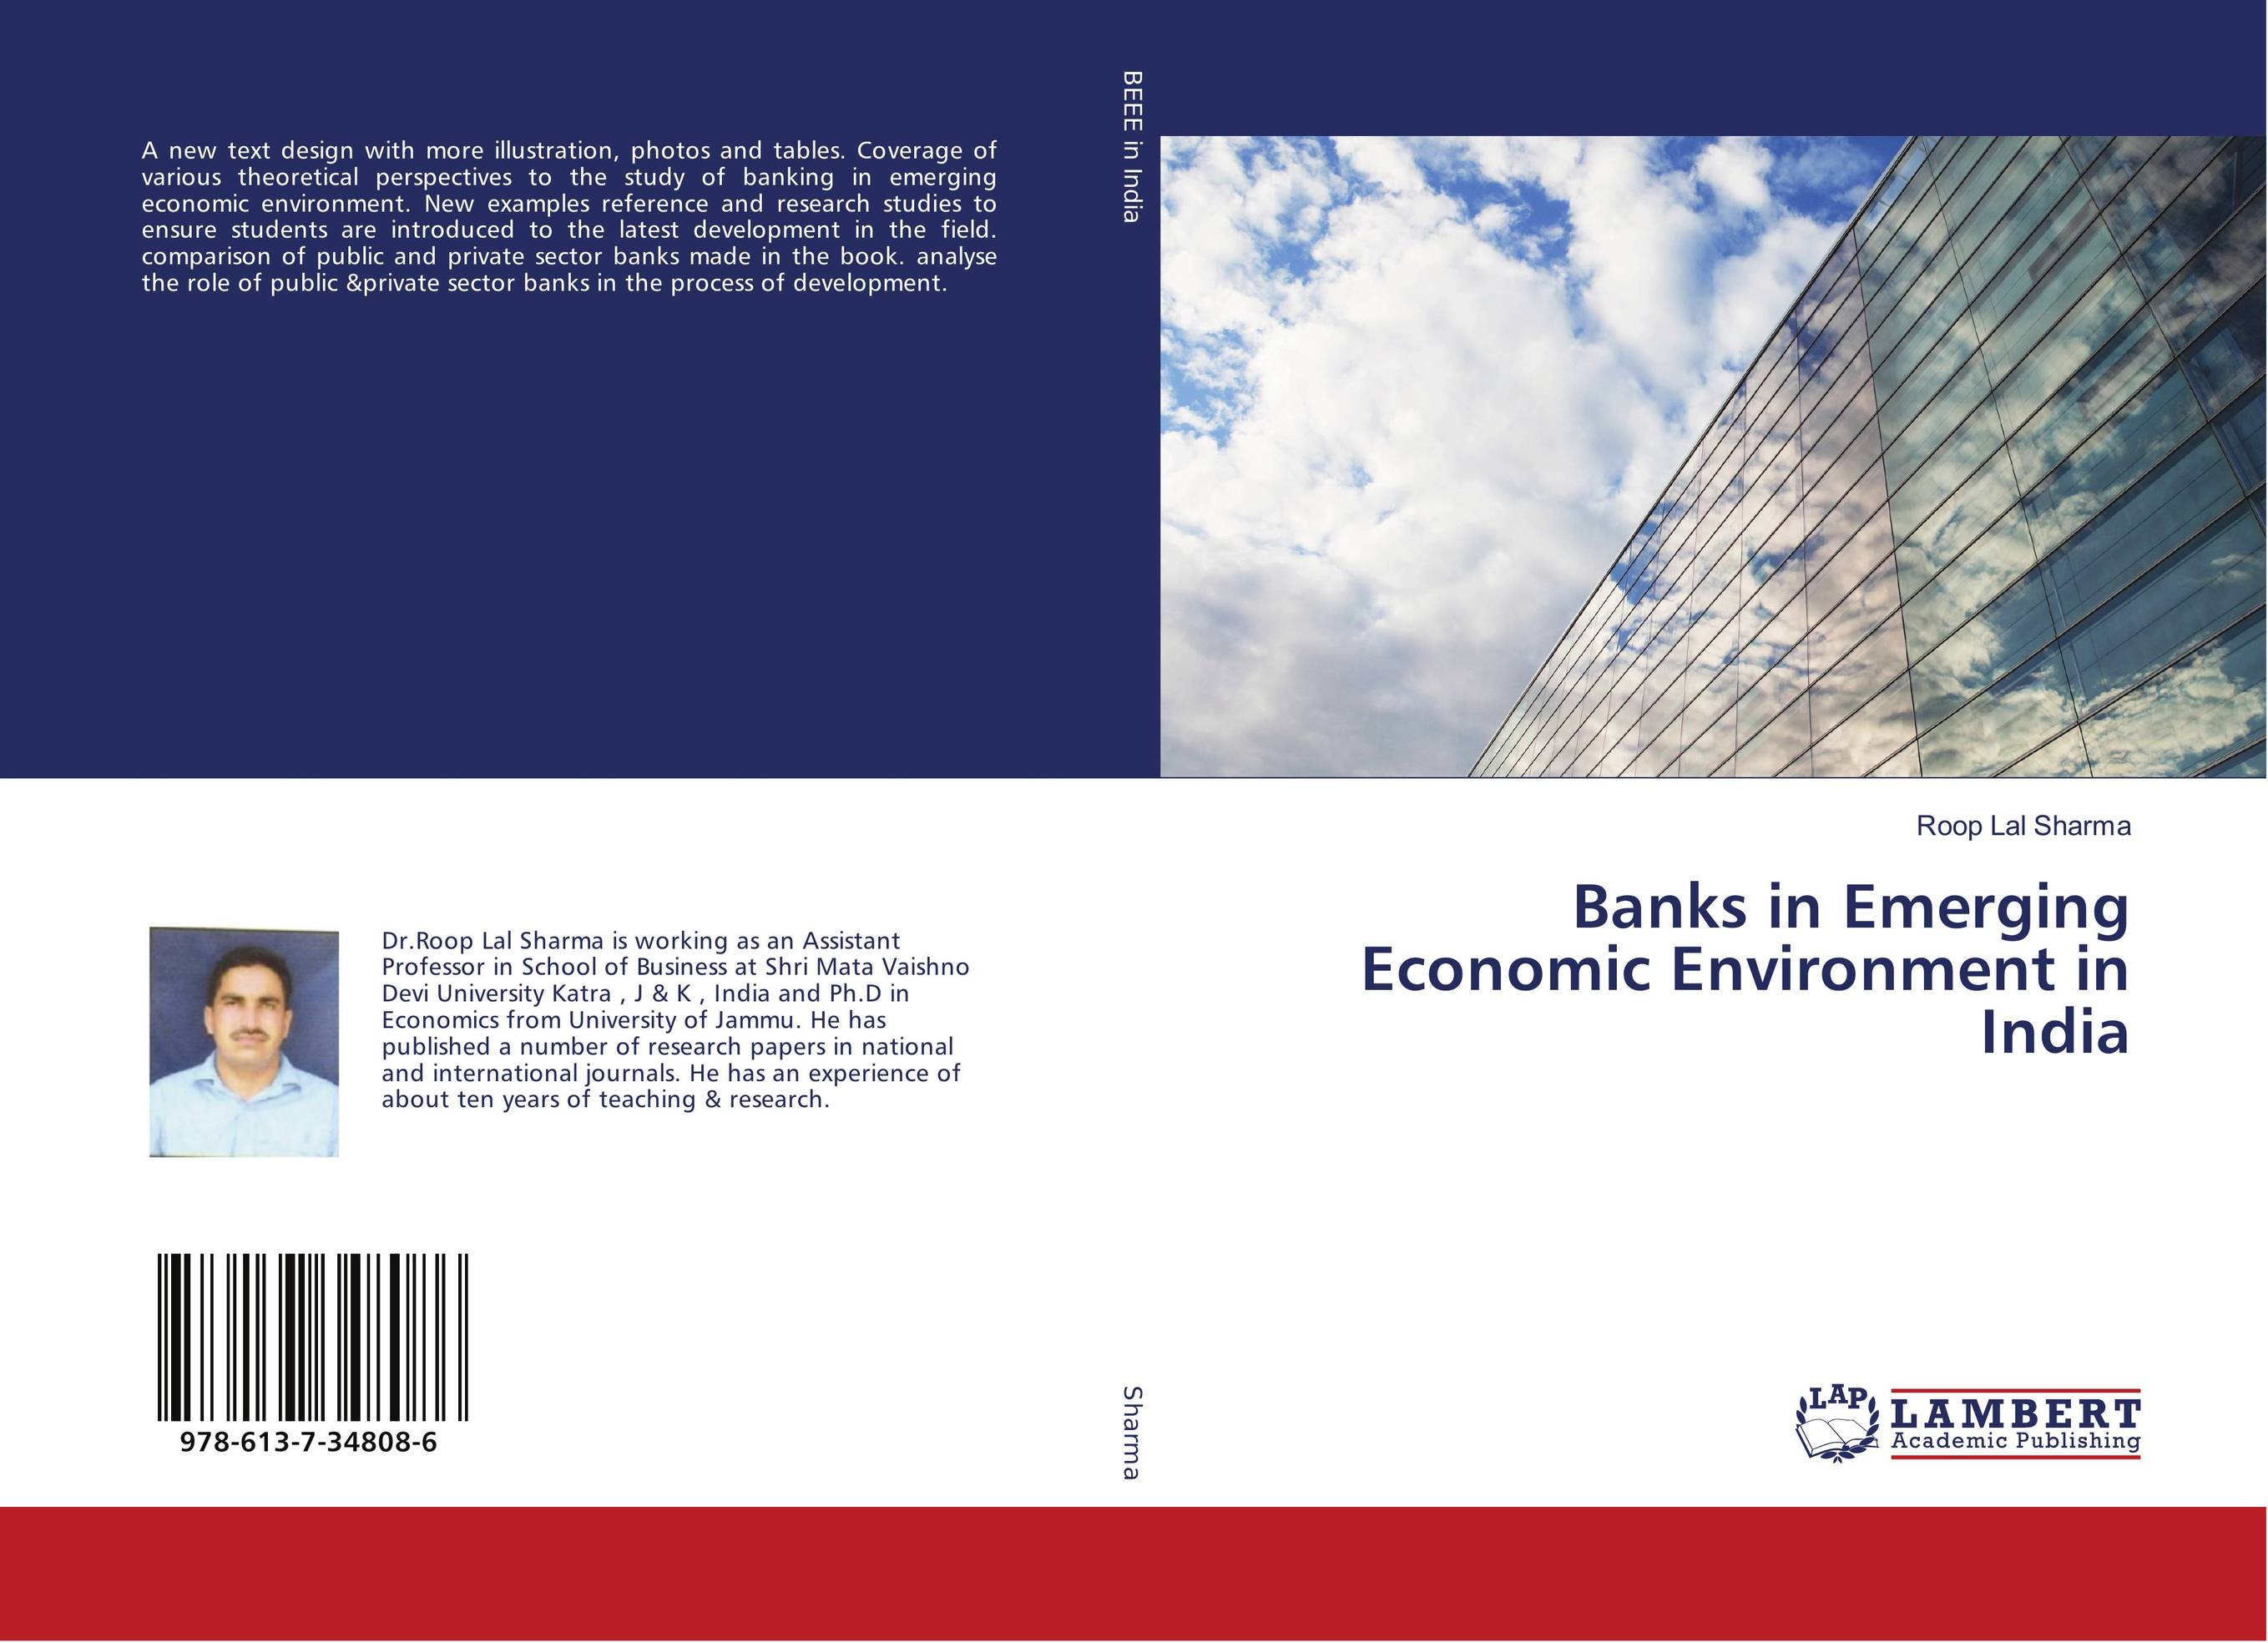 an analysis of the role of banks in north america Middle east and north africa) experienced large increases and those with higher rates (primarily europe and central asia and east asia and pacific) experienced small declines (box figure 511.